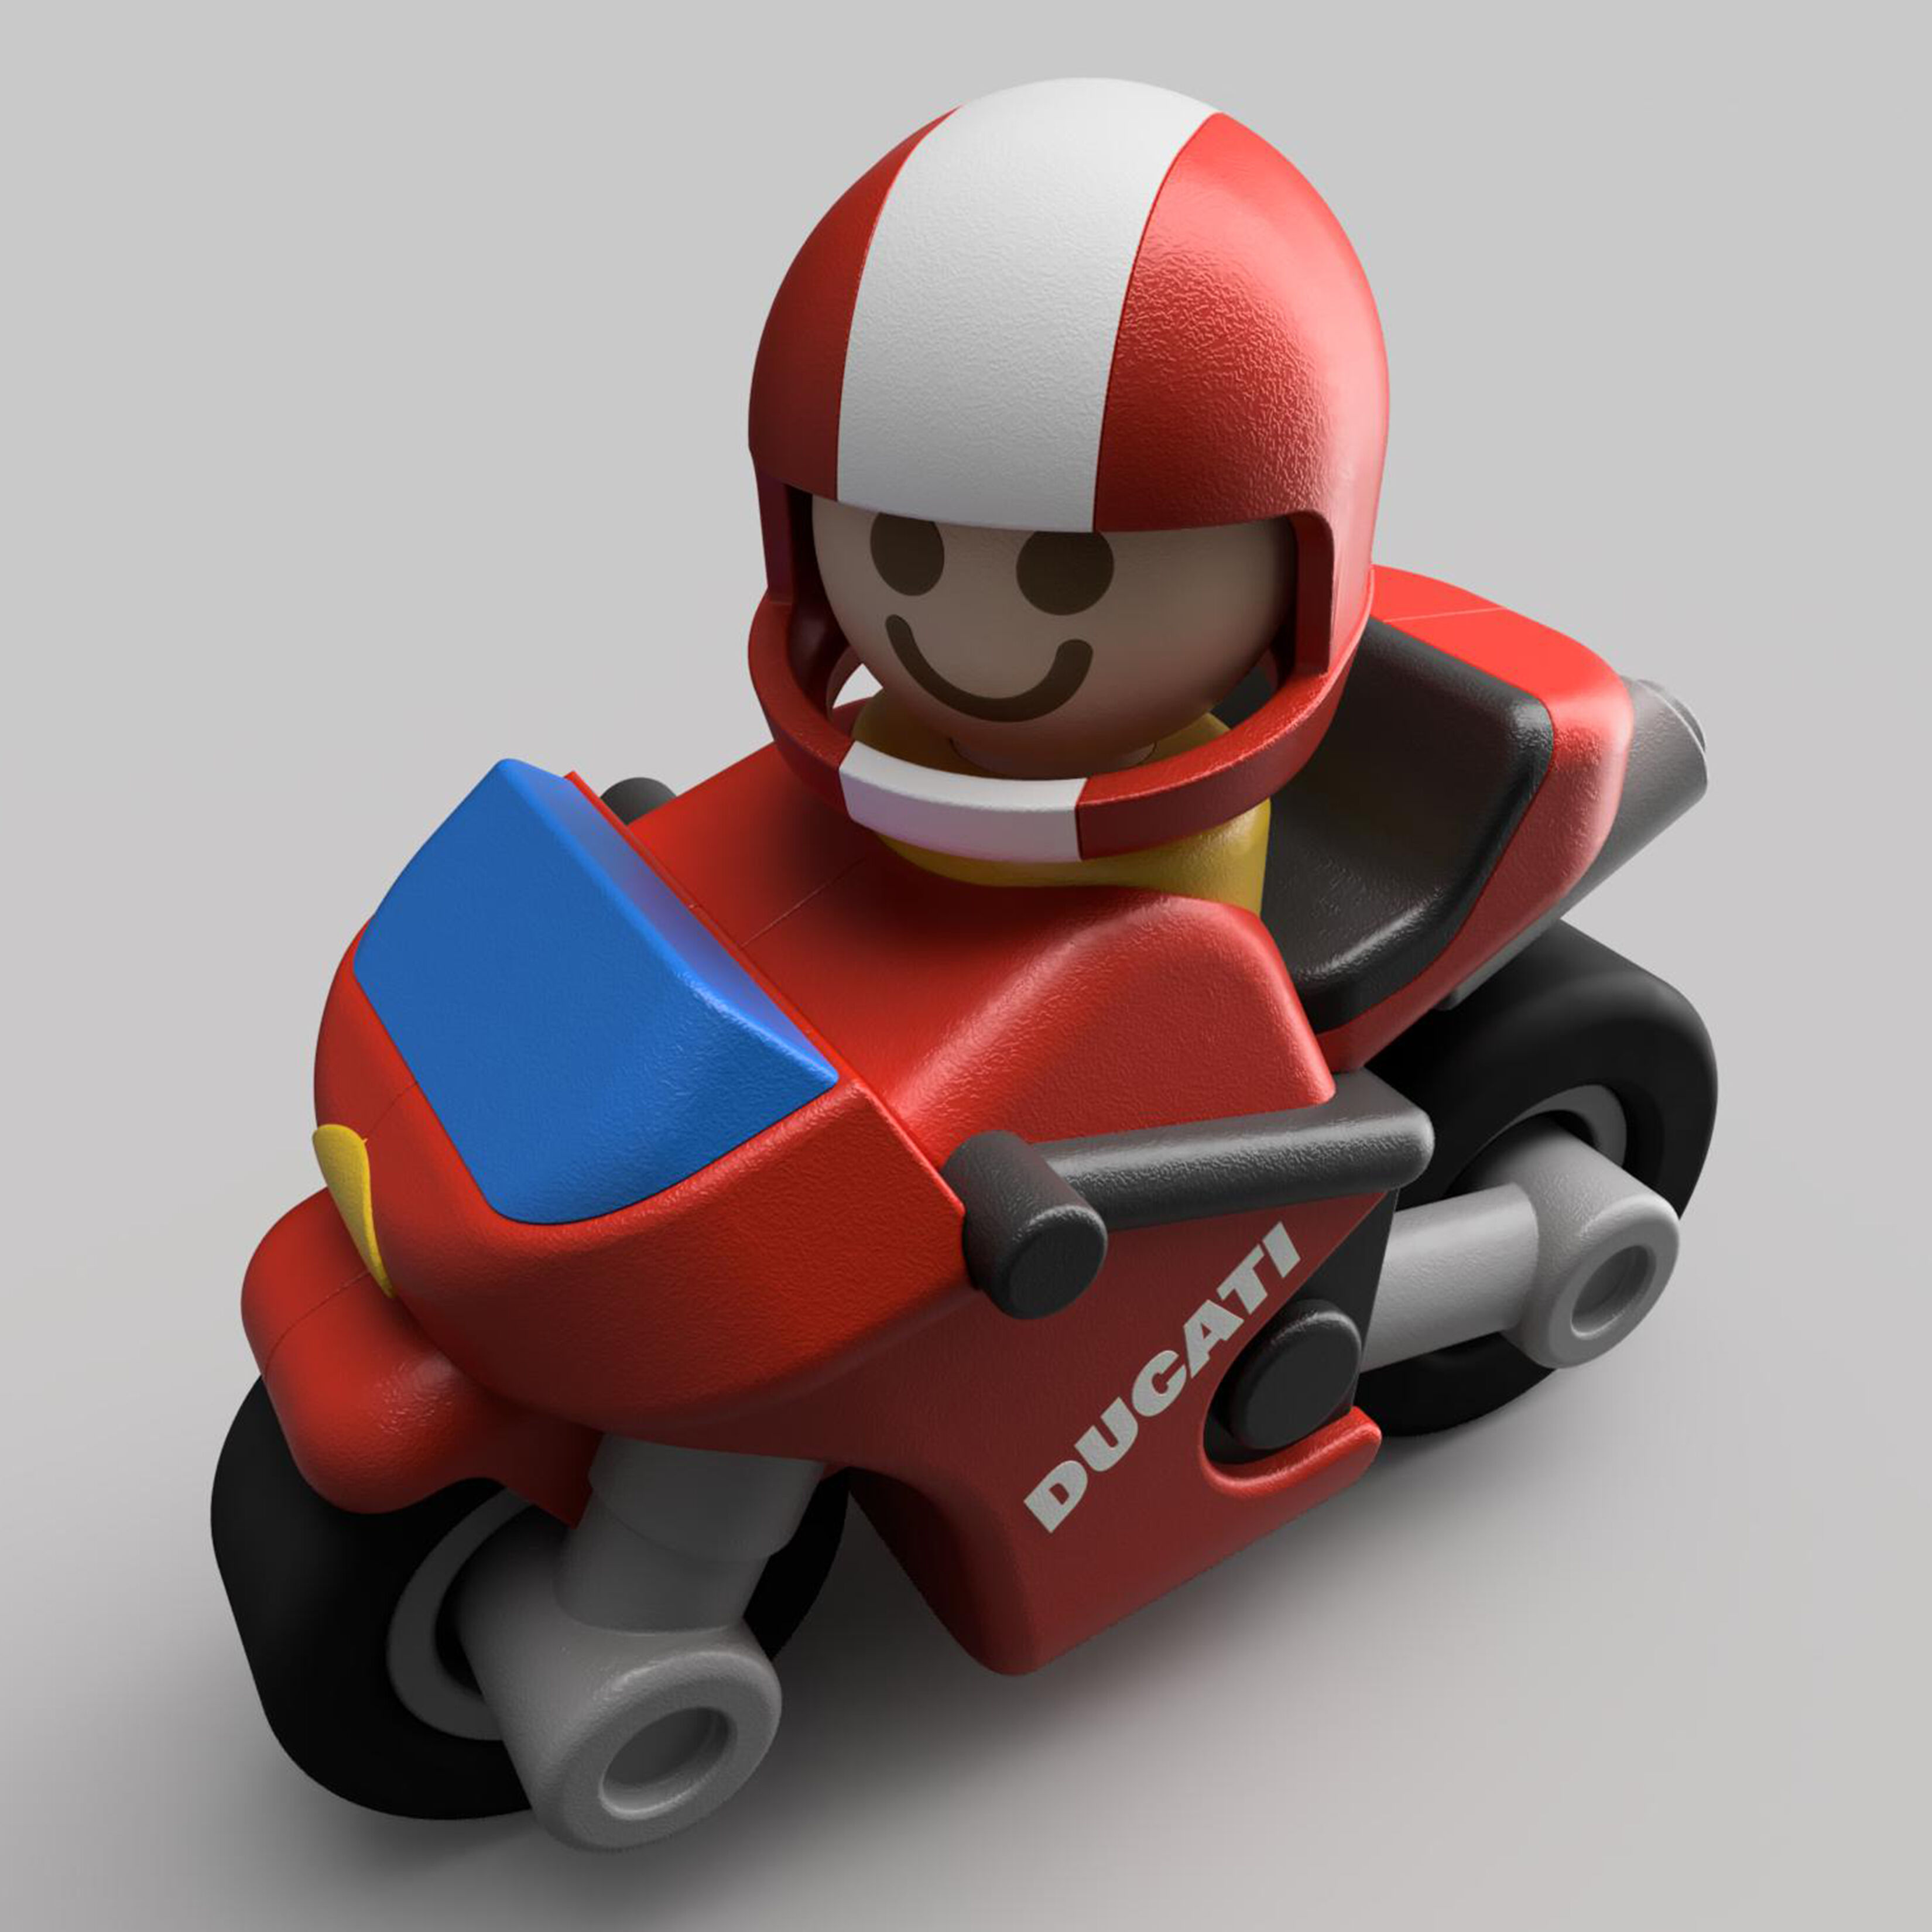 Toy-ducati-2020-jun-04-12-18-54pm-000-customizedview6529902499-3500-3500